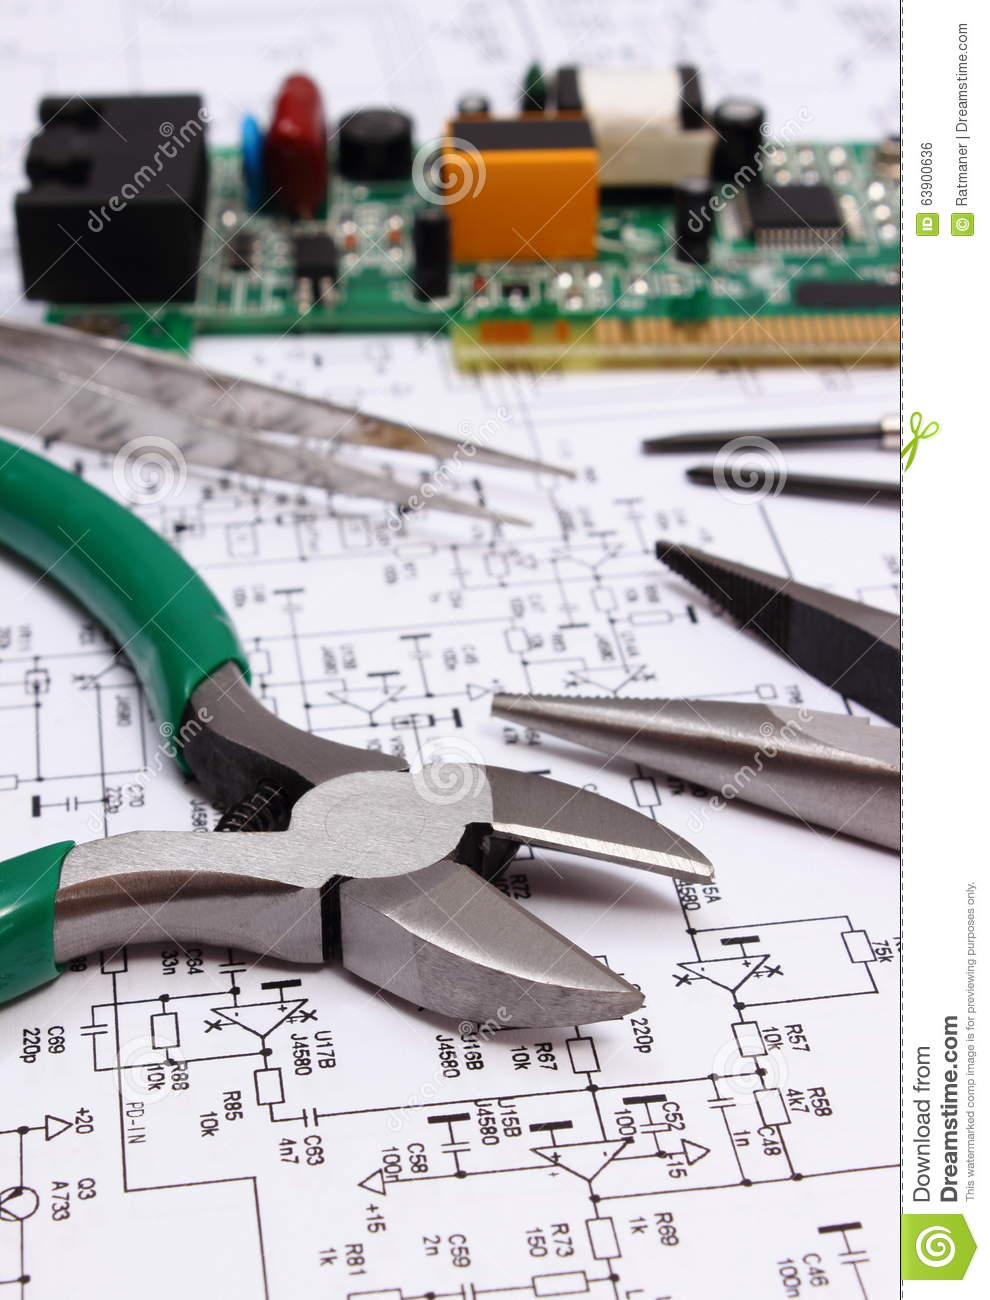 Printed Circuit Board And Precision Tools On Diagram Of Electronics With Electrical Components Technology